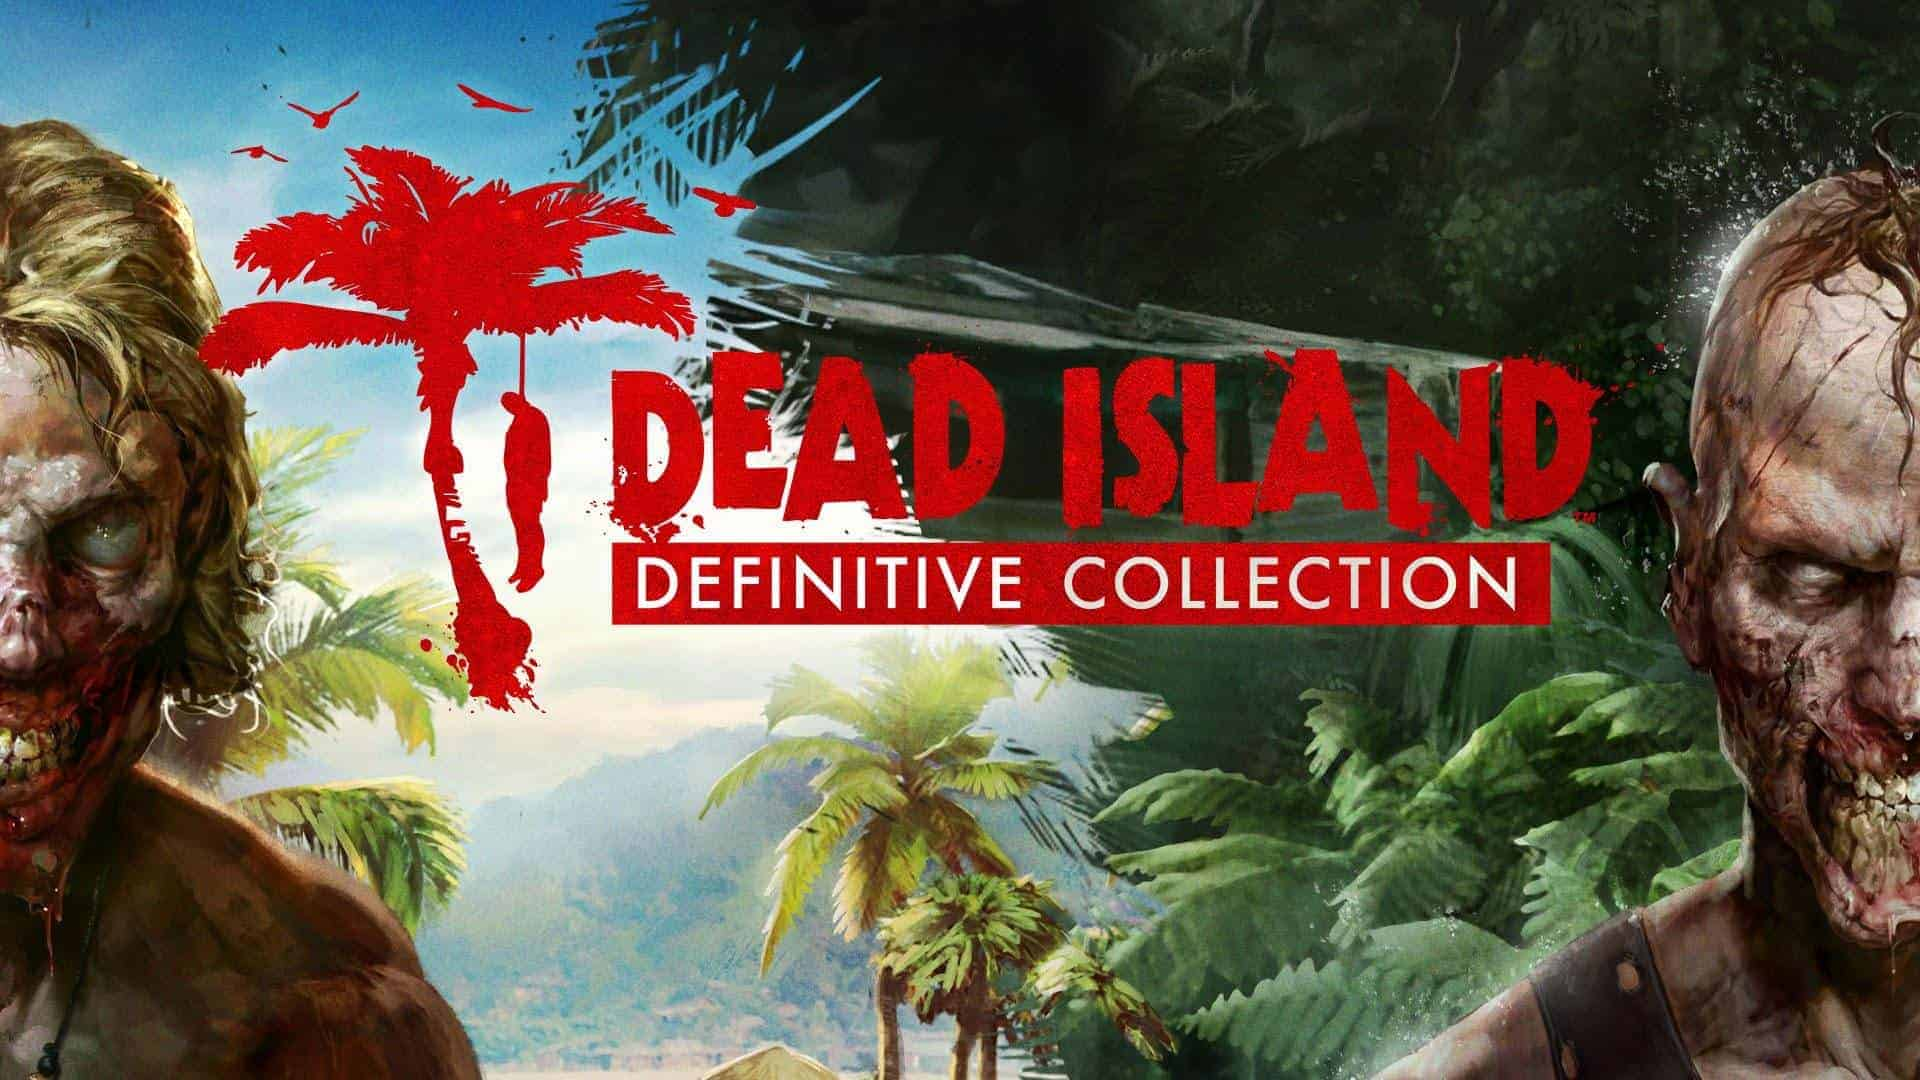 Dead Island Definitive Collection PC Game Download